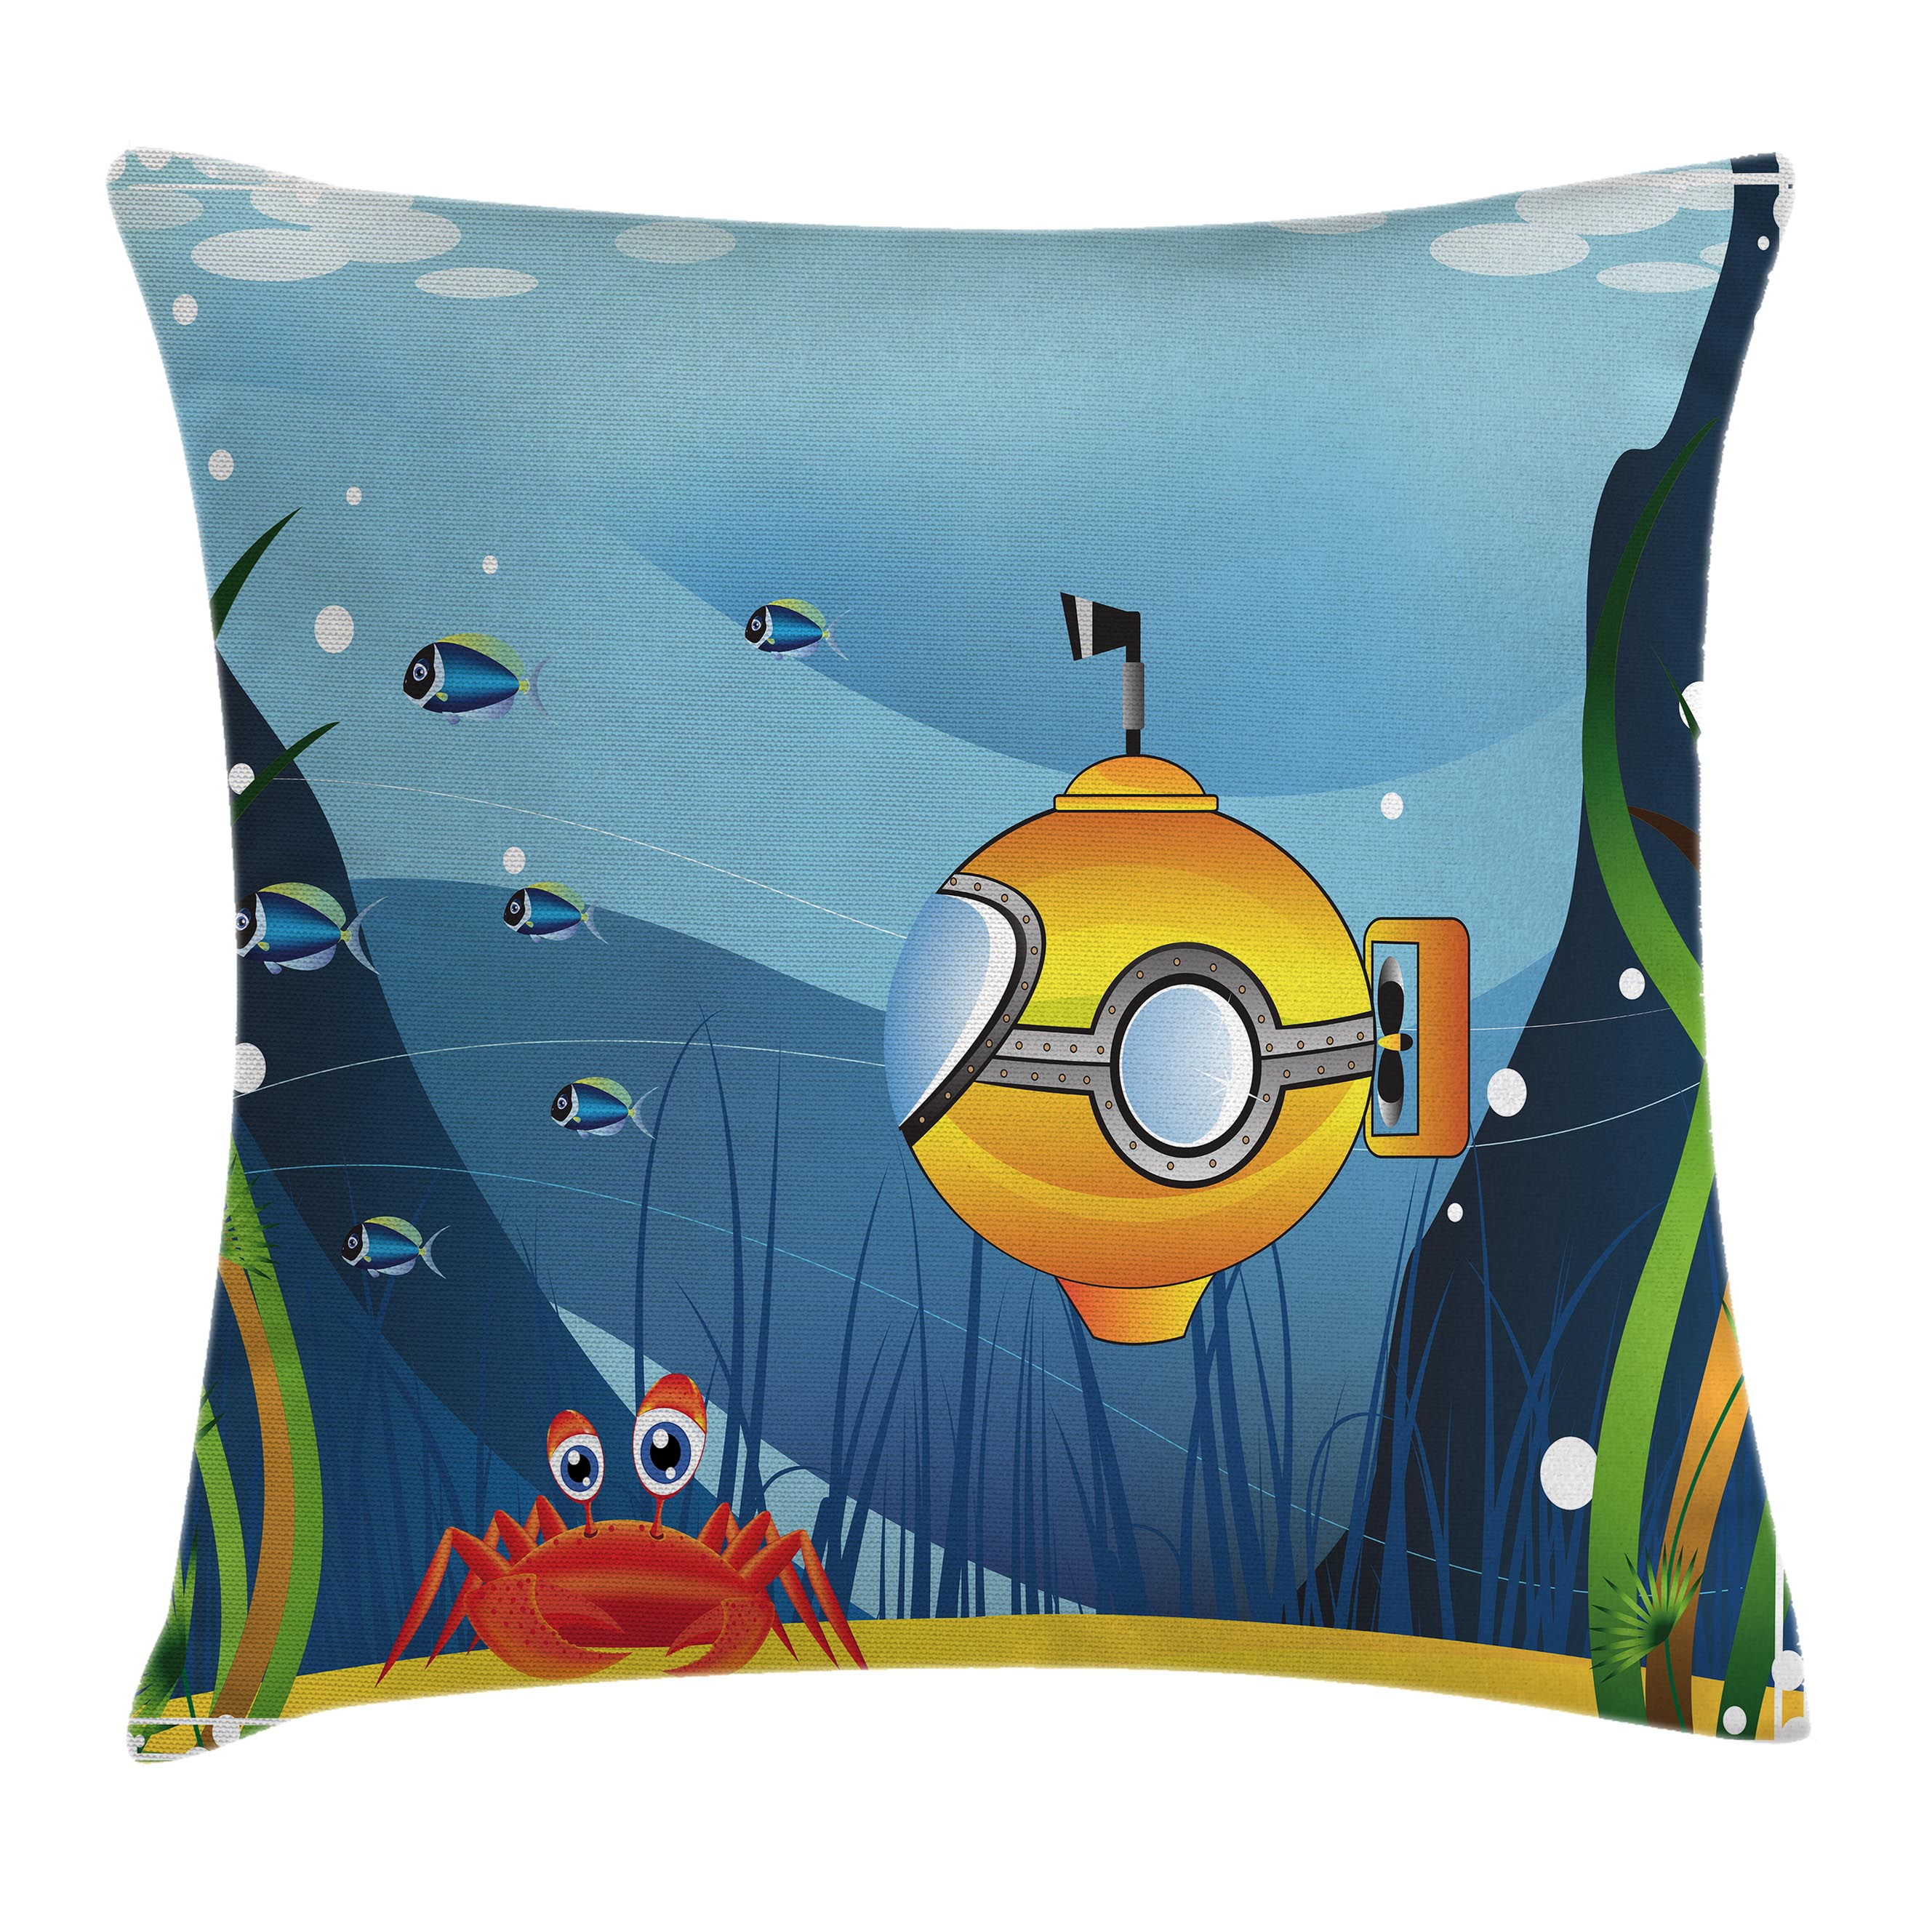 Yellow Submarine Decor Throw Pillow Cushion Cover, Illustration of a Submarine a Crab and Fish under the Sea Print, Decorative Square Accent Pillow Case, 16 X 16 Inches, Marigold Blue, by Ambesonne